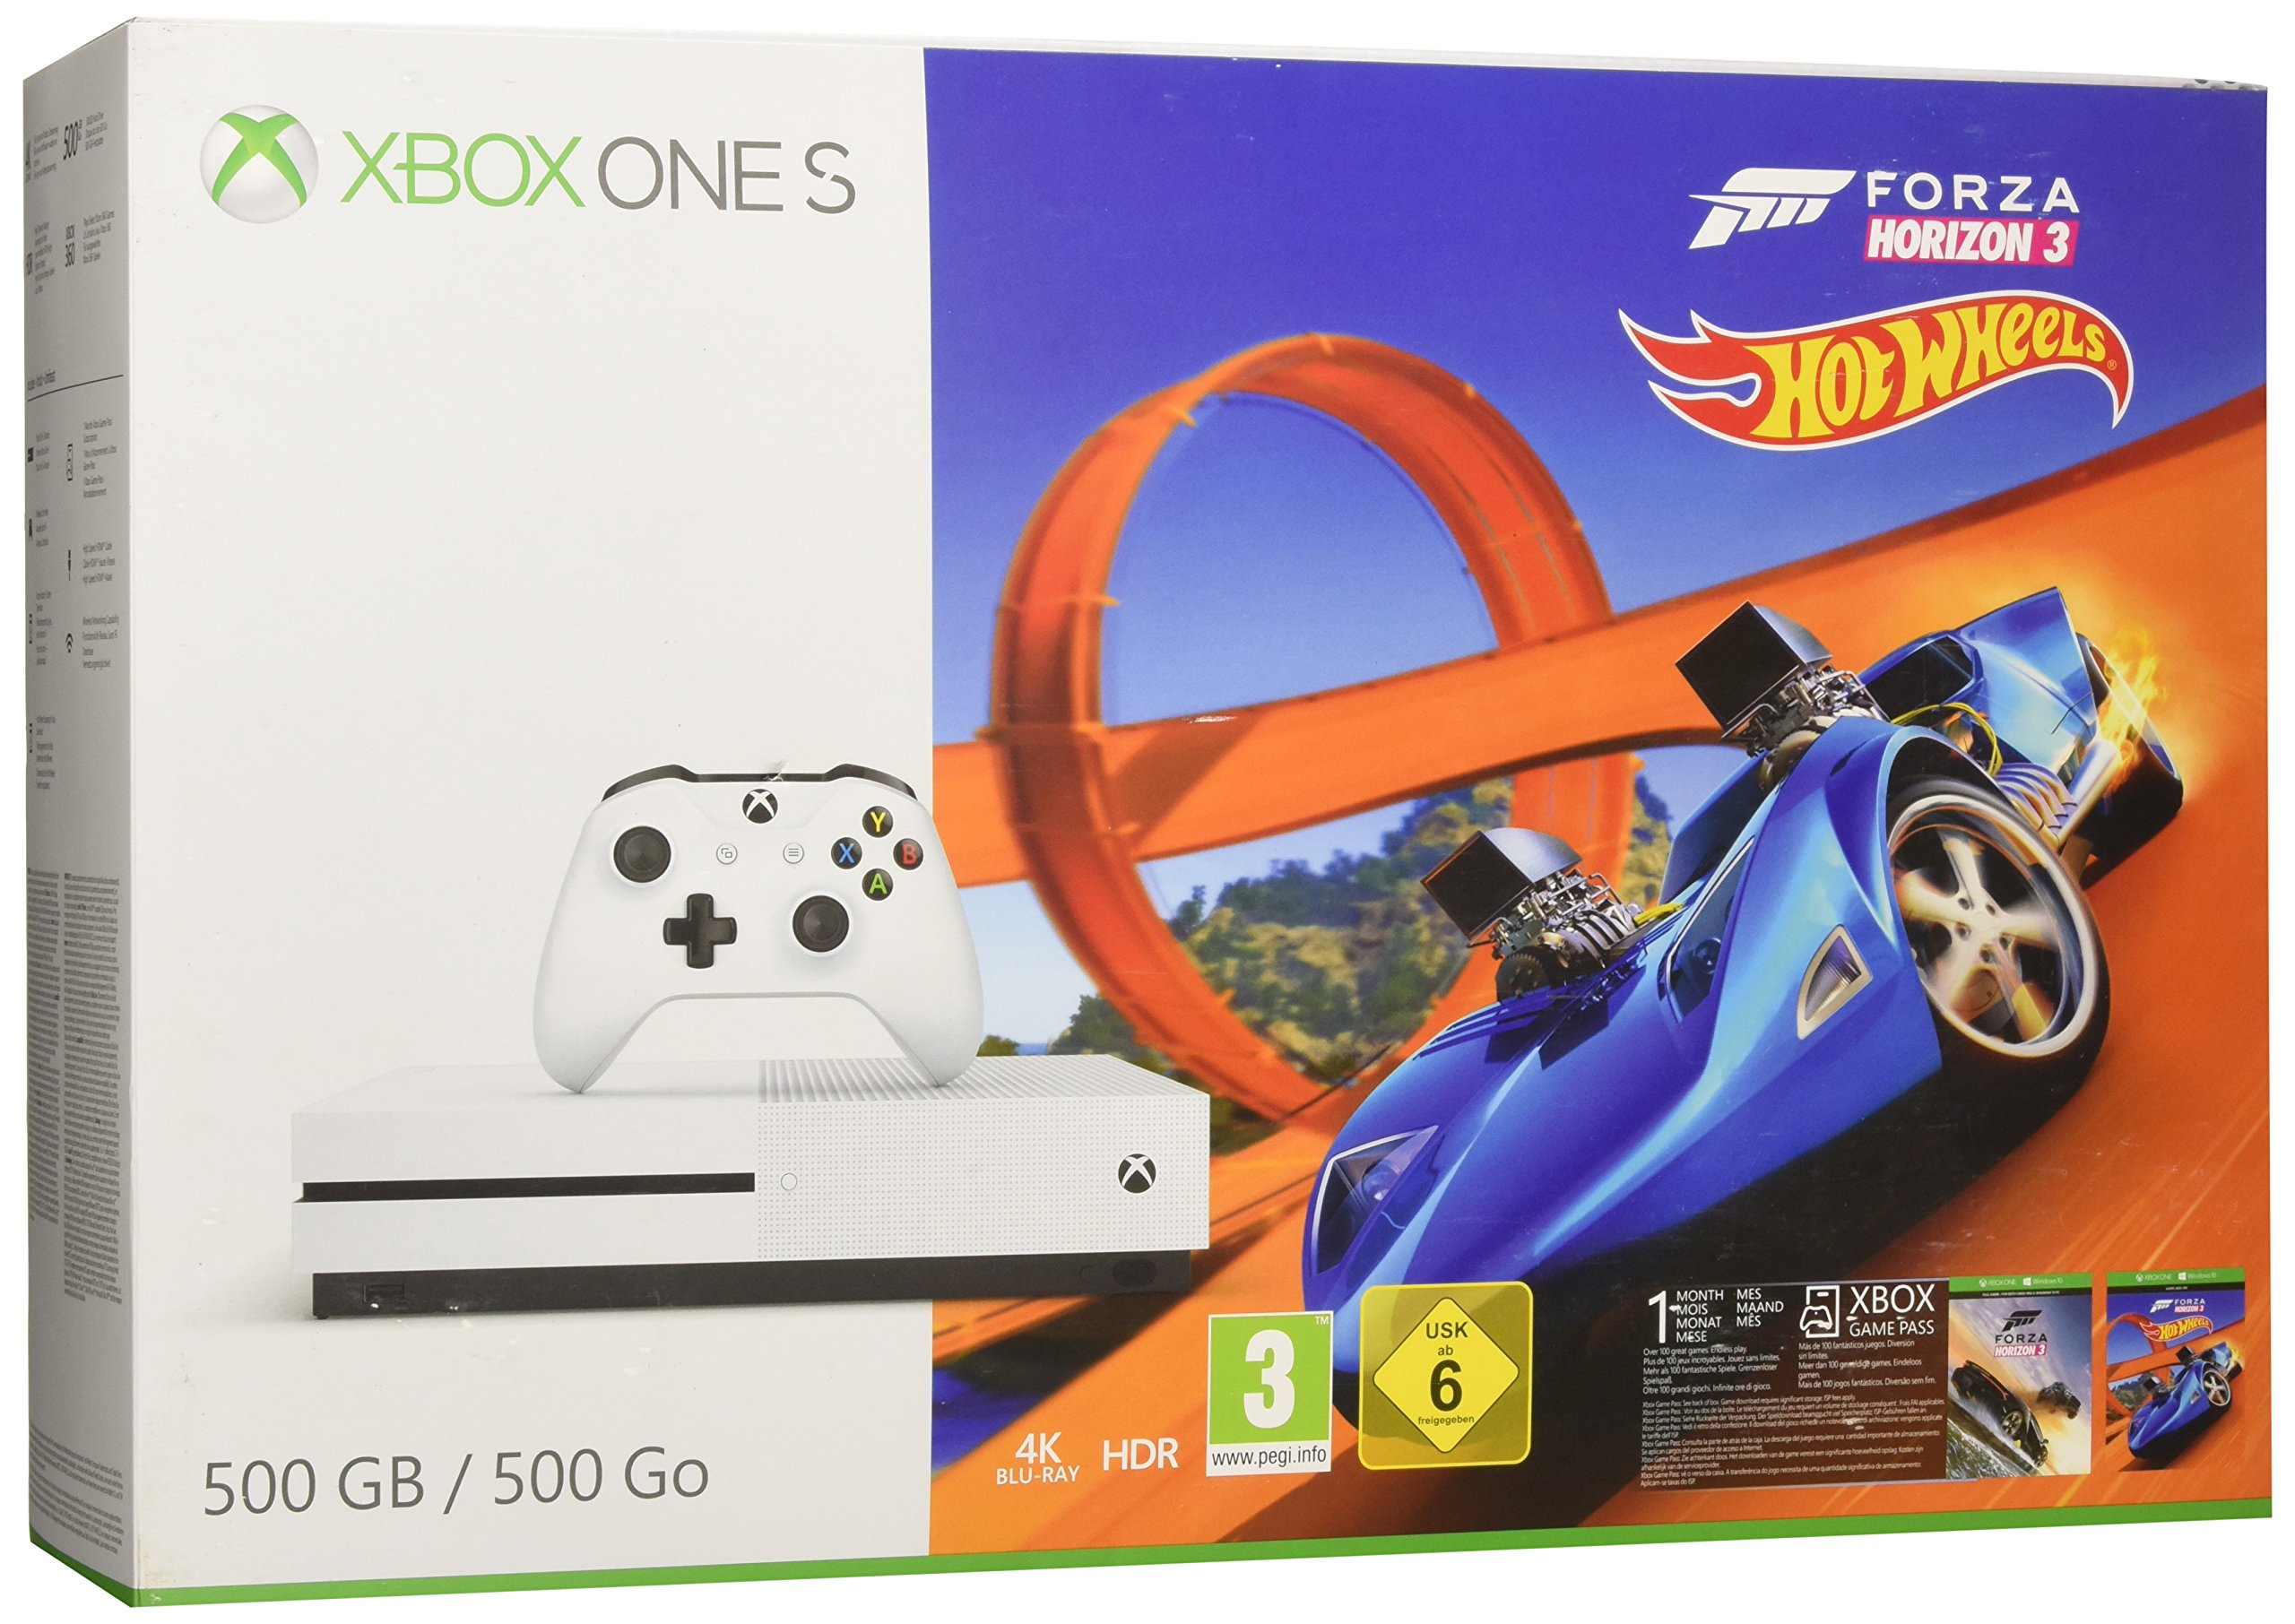 Xbox One S - Consola 500 GB + Forza Horizon 3 + Hot Wheels: Amazon ...